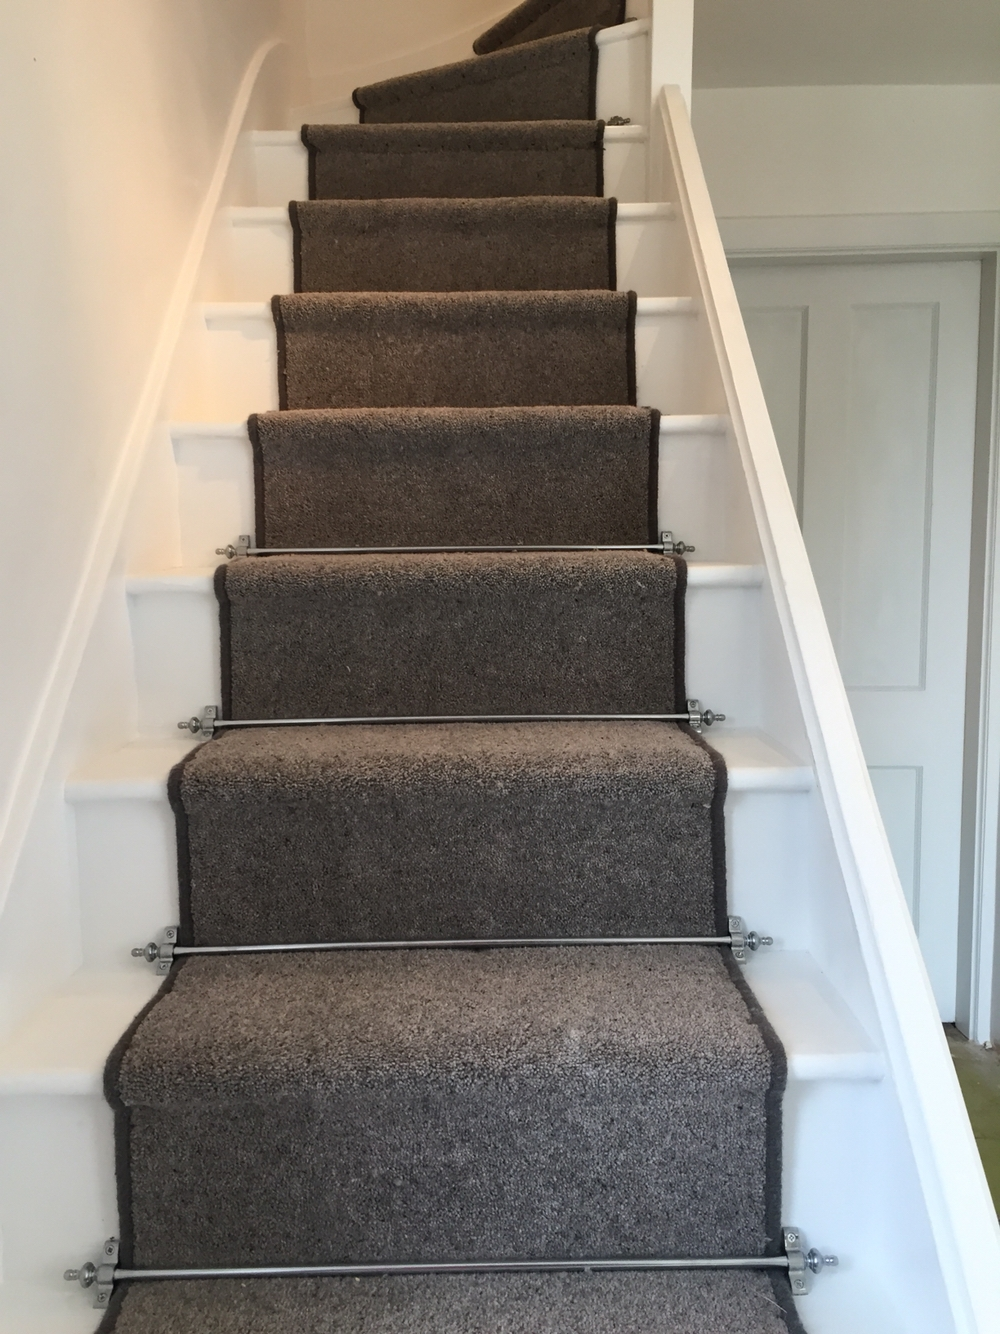 Grey Carpet With Black Border And Golden Stair Rods To Stairs With Regard To Stair Tread Carpet Bars (Image 4 of 15)